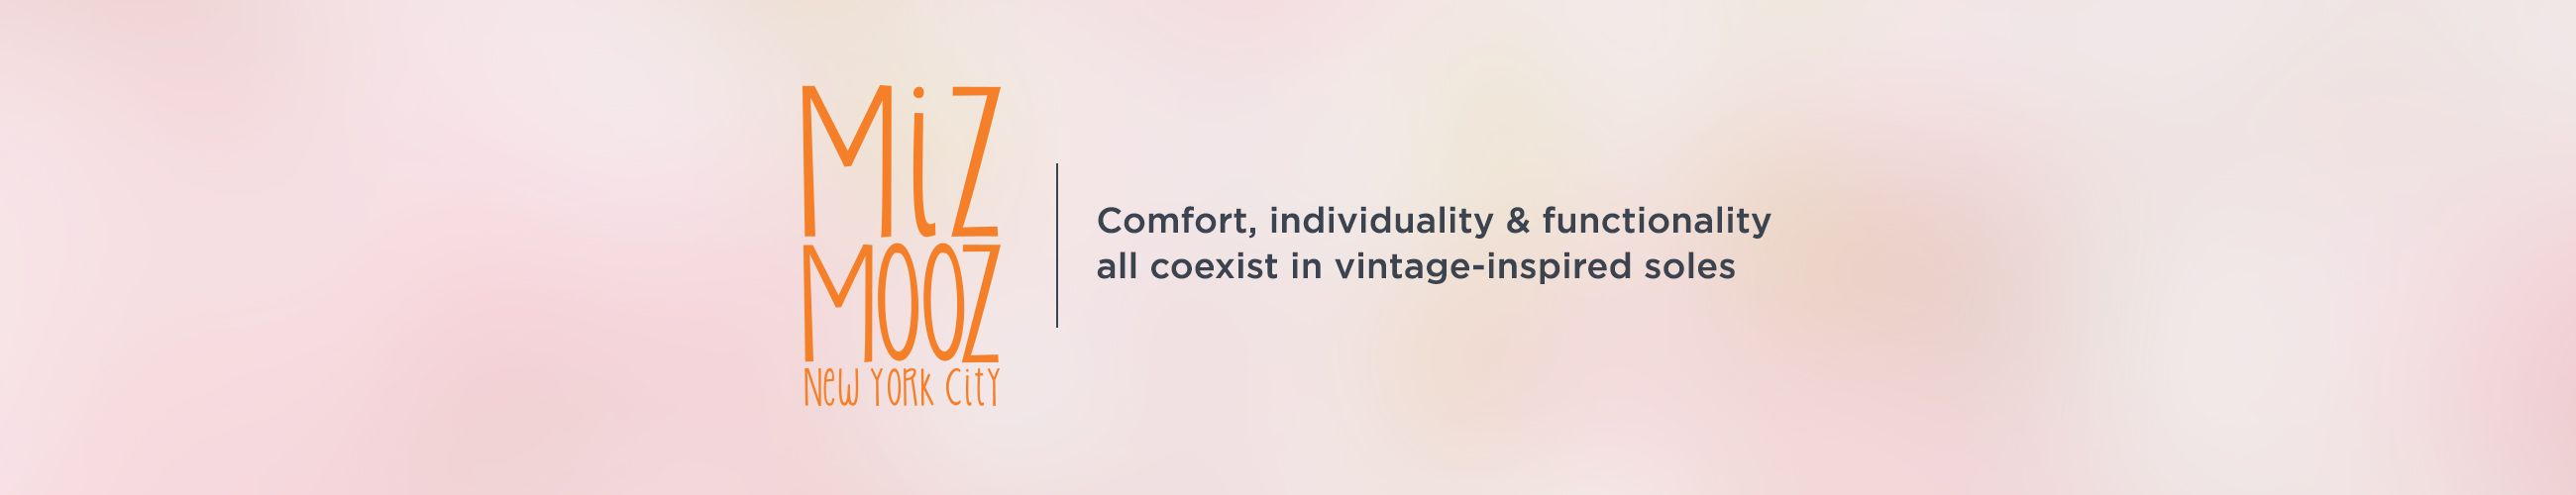 Miz Mooz. Comfort, individuality & functionality all coexist in vintage-inspired soles